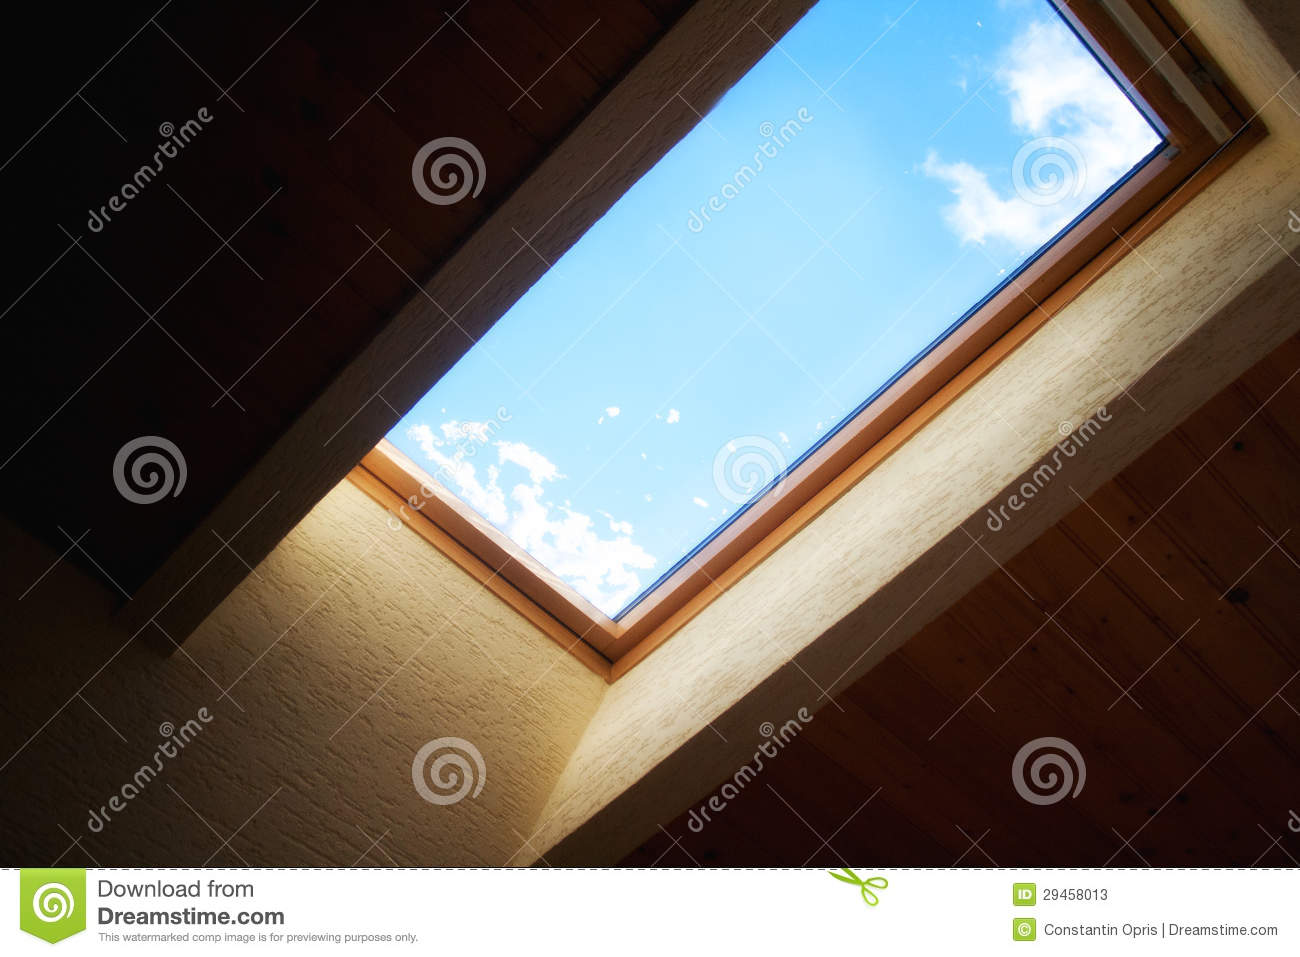 Sky through attic window